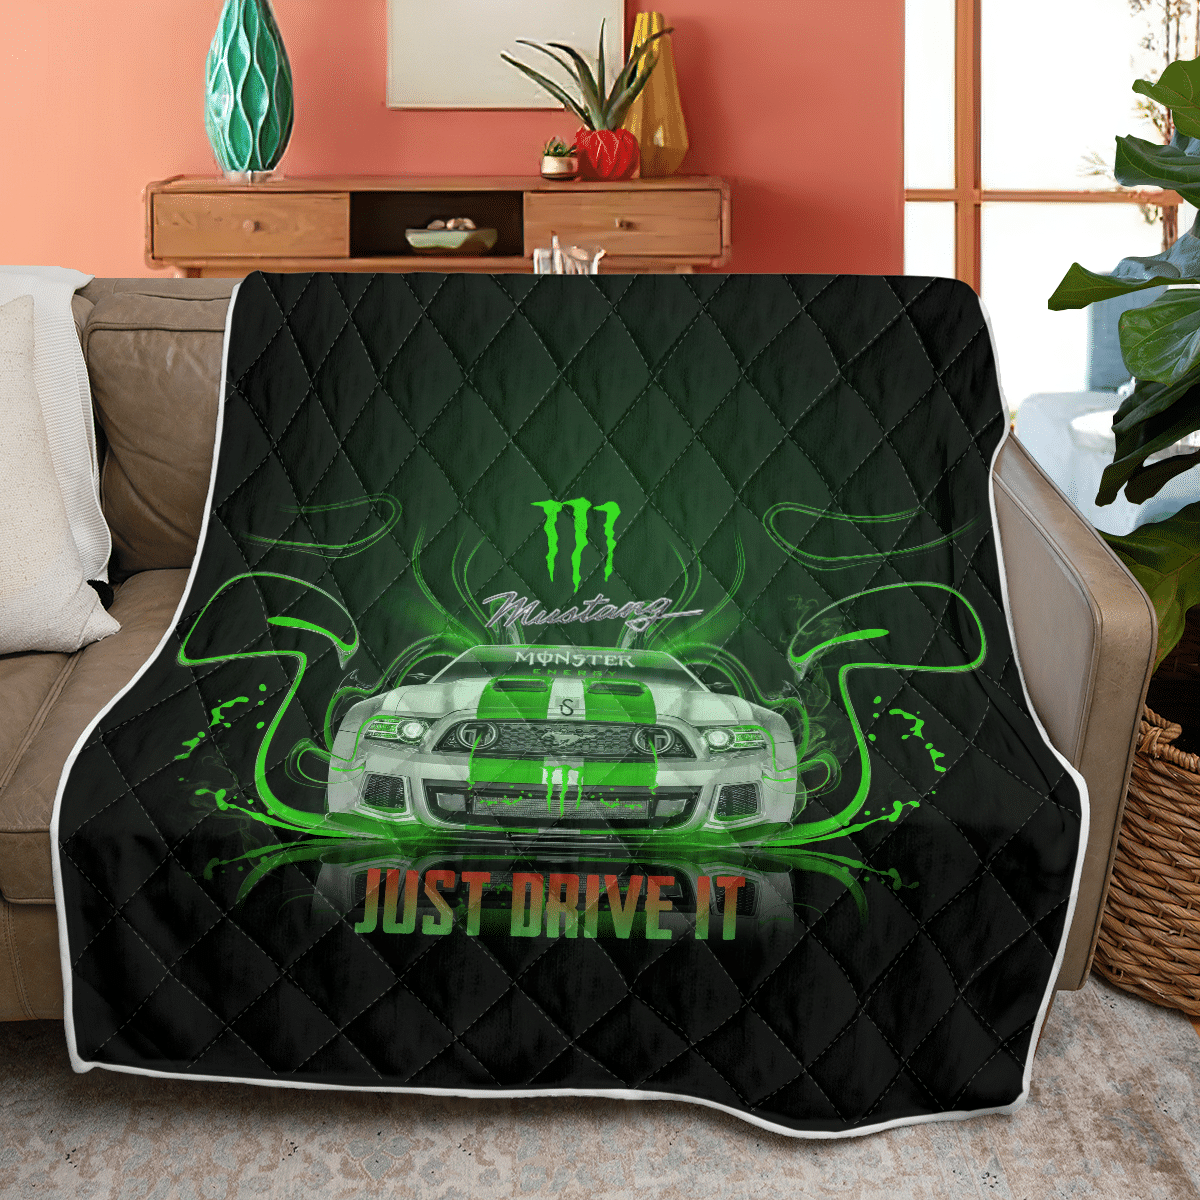 Ford Mustang and Monster Energy Quilt blanket